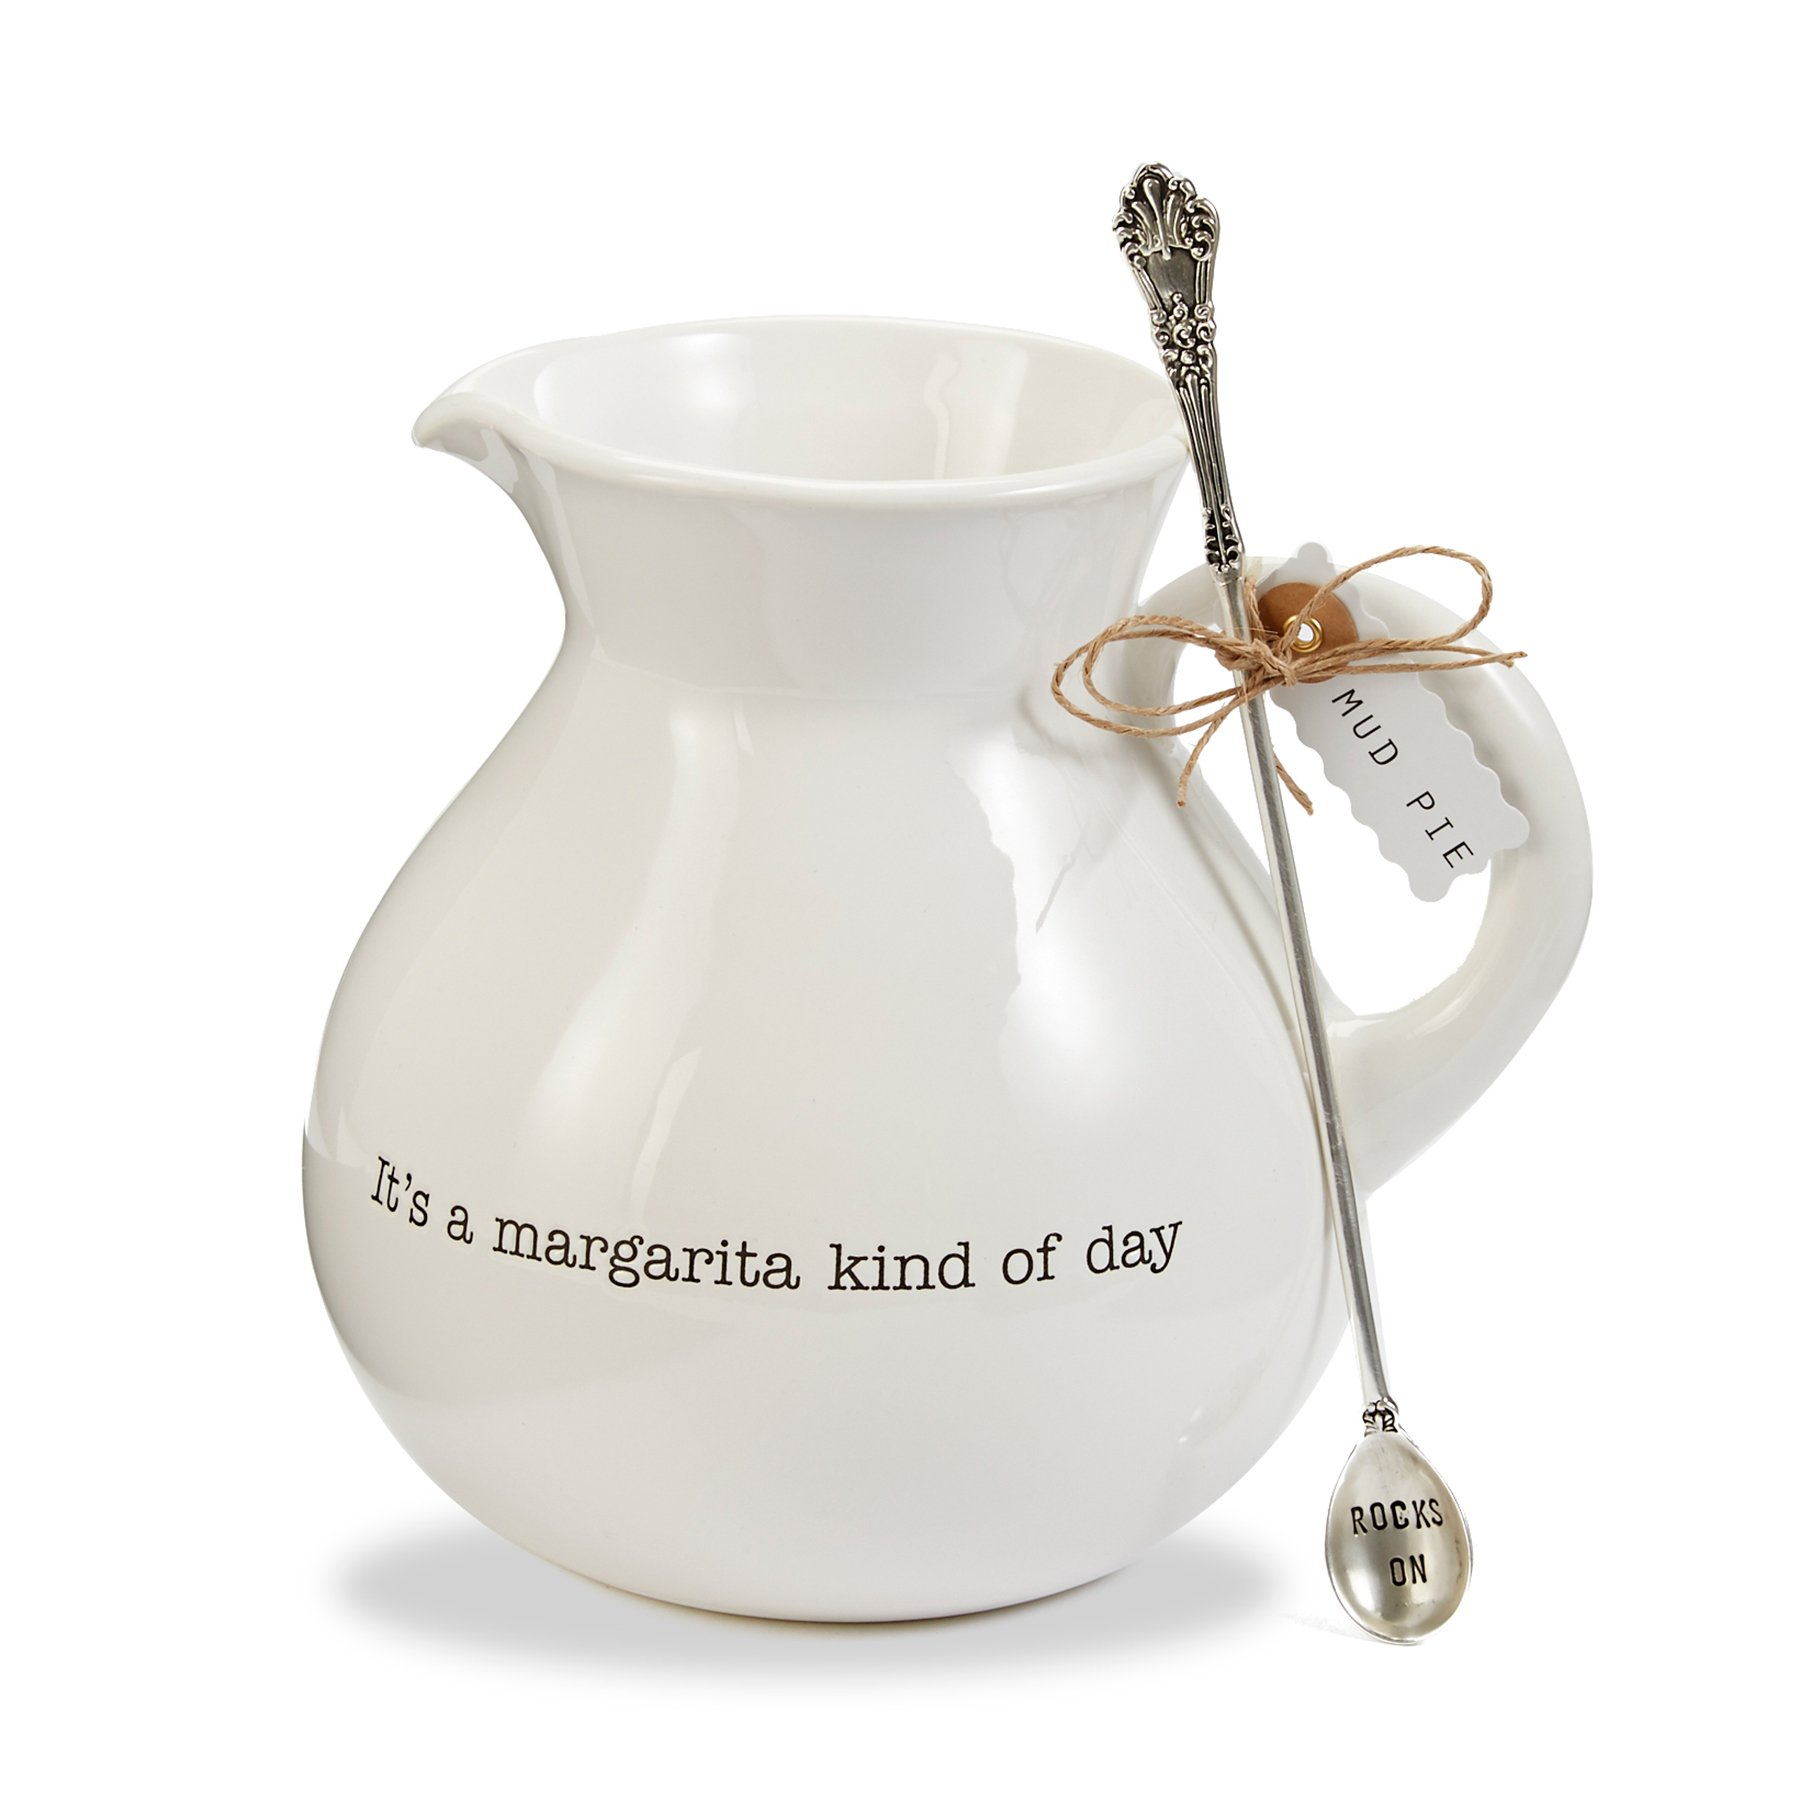 Mud Pie 4551025 Margarita Pitcher, White by Mud Pie (Image #2)